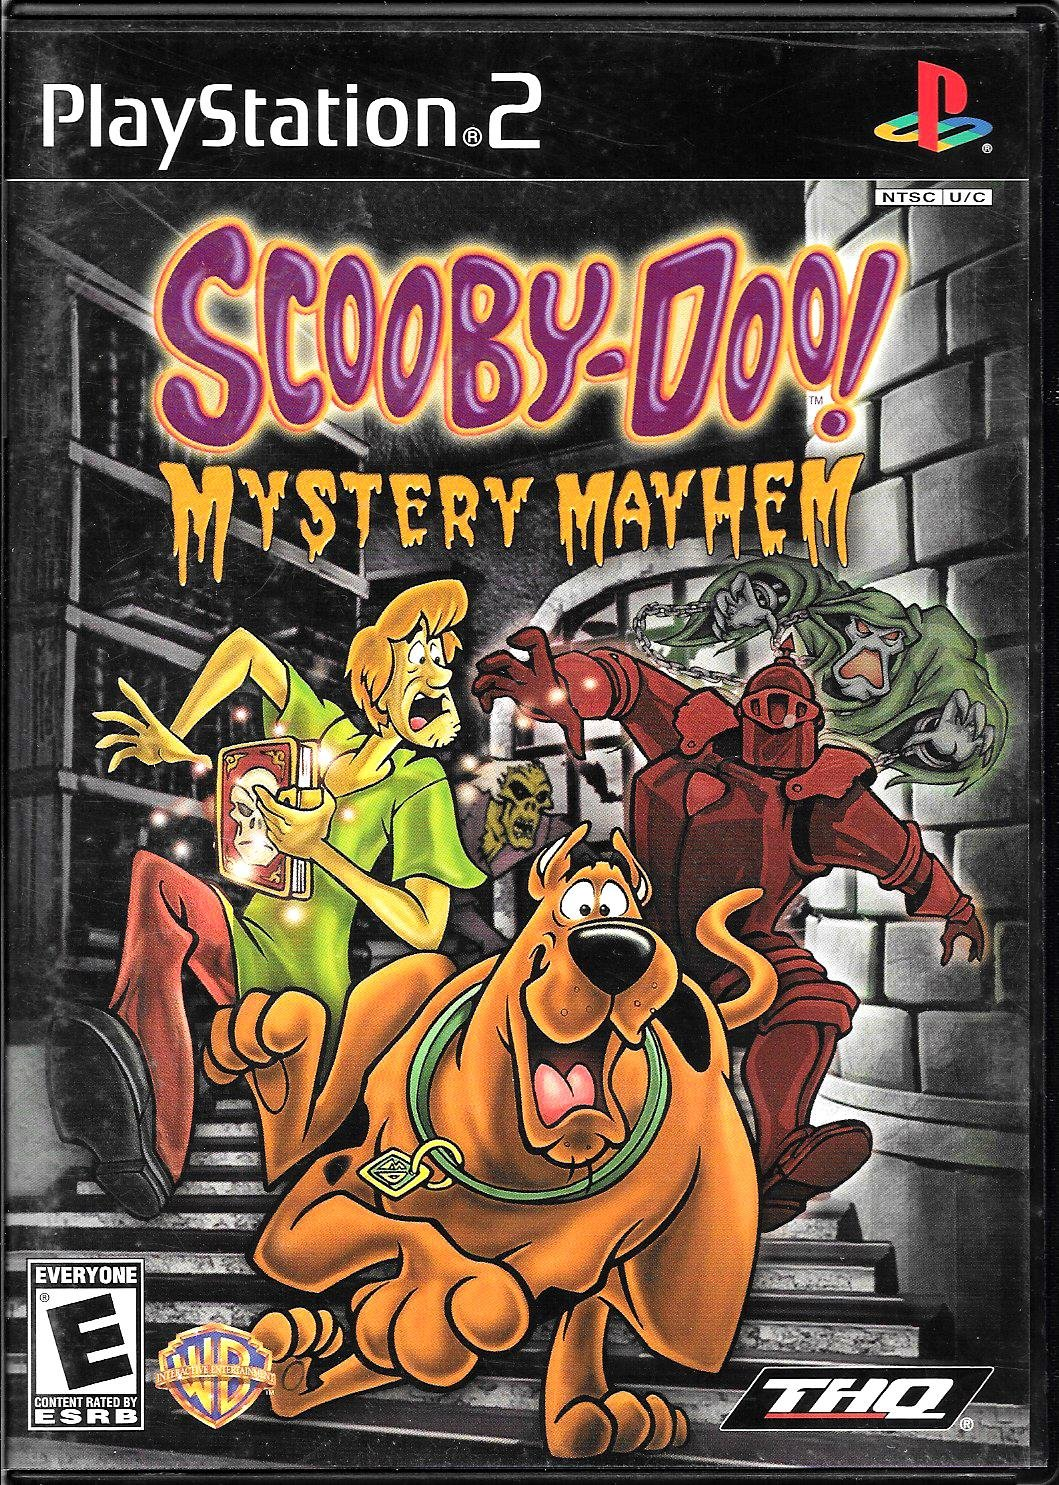 Amazon com: Scooby-Doo: Mystery Mayhem: Video Games